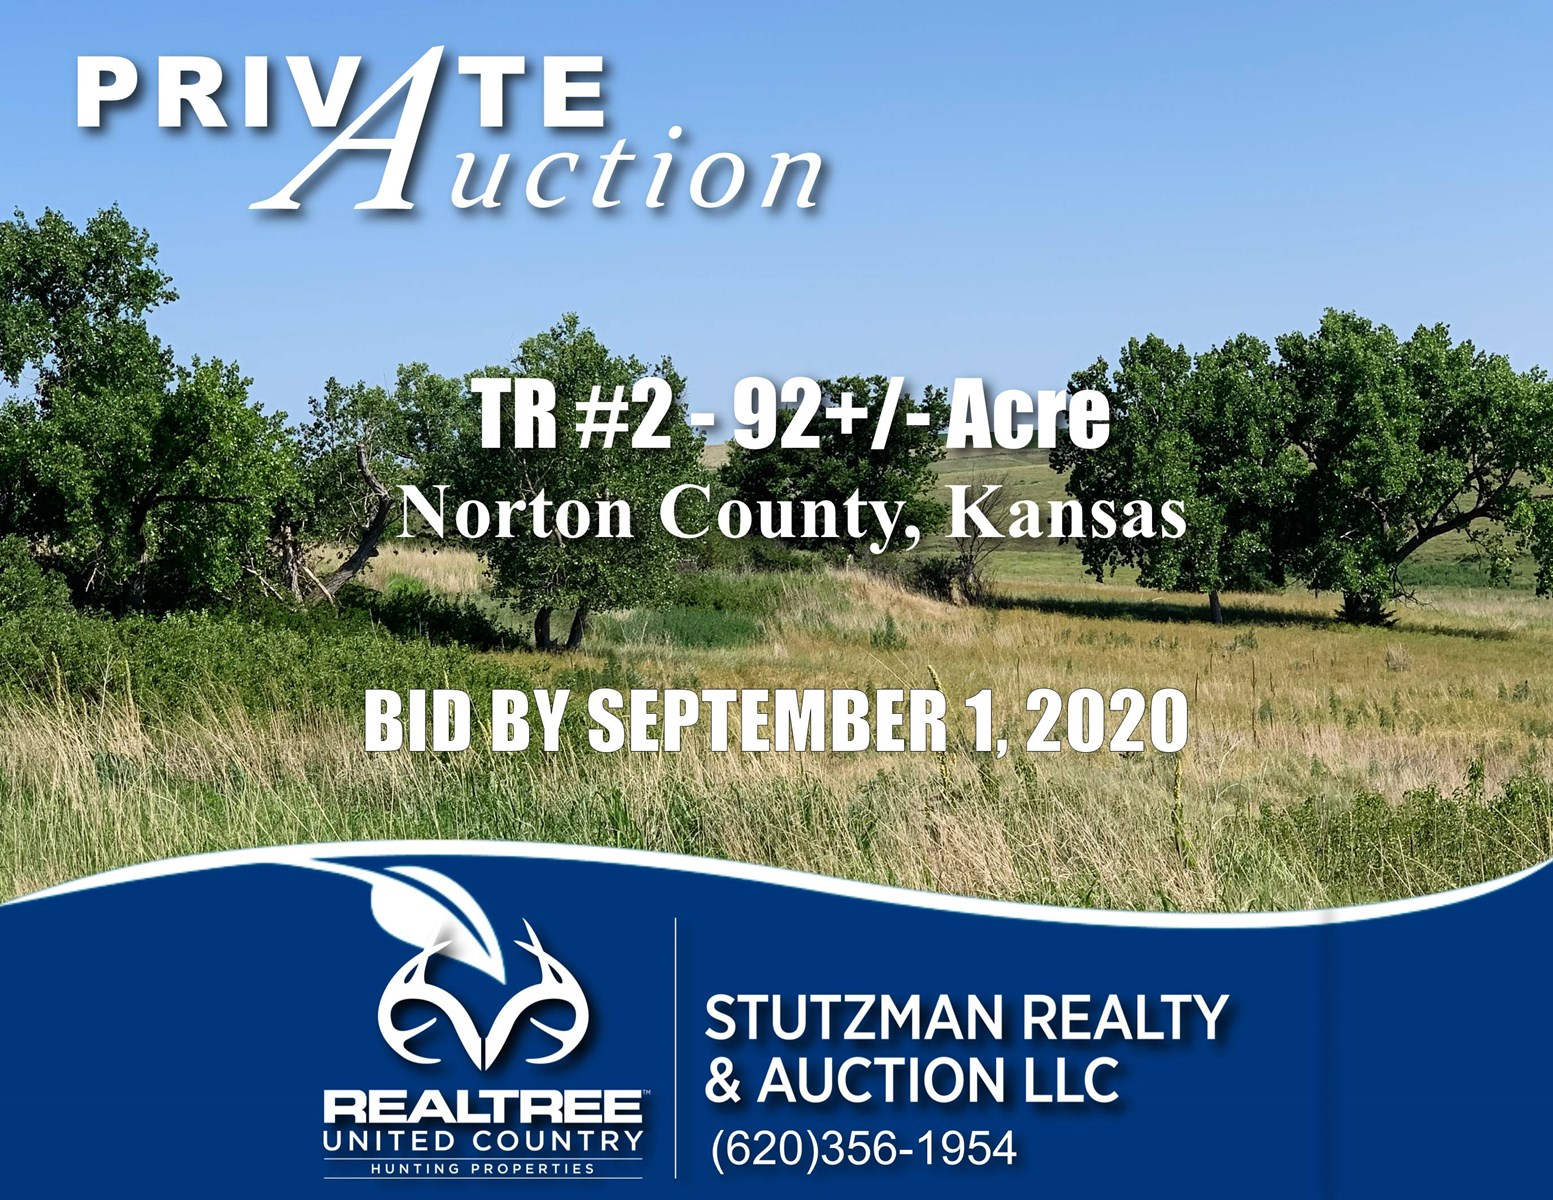 NORTON COUNTY, KS TR ~ 92+/- ACRE ~  PRIVATE AUCTION